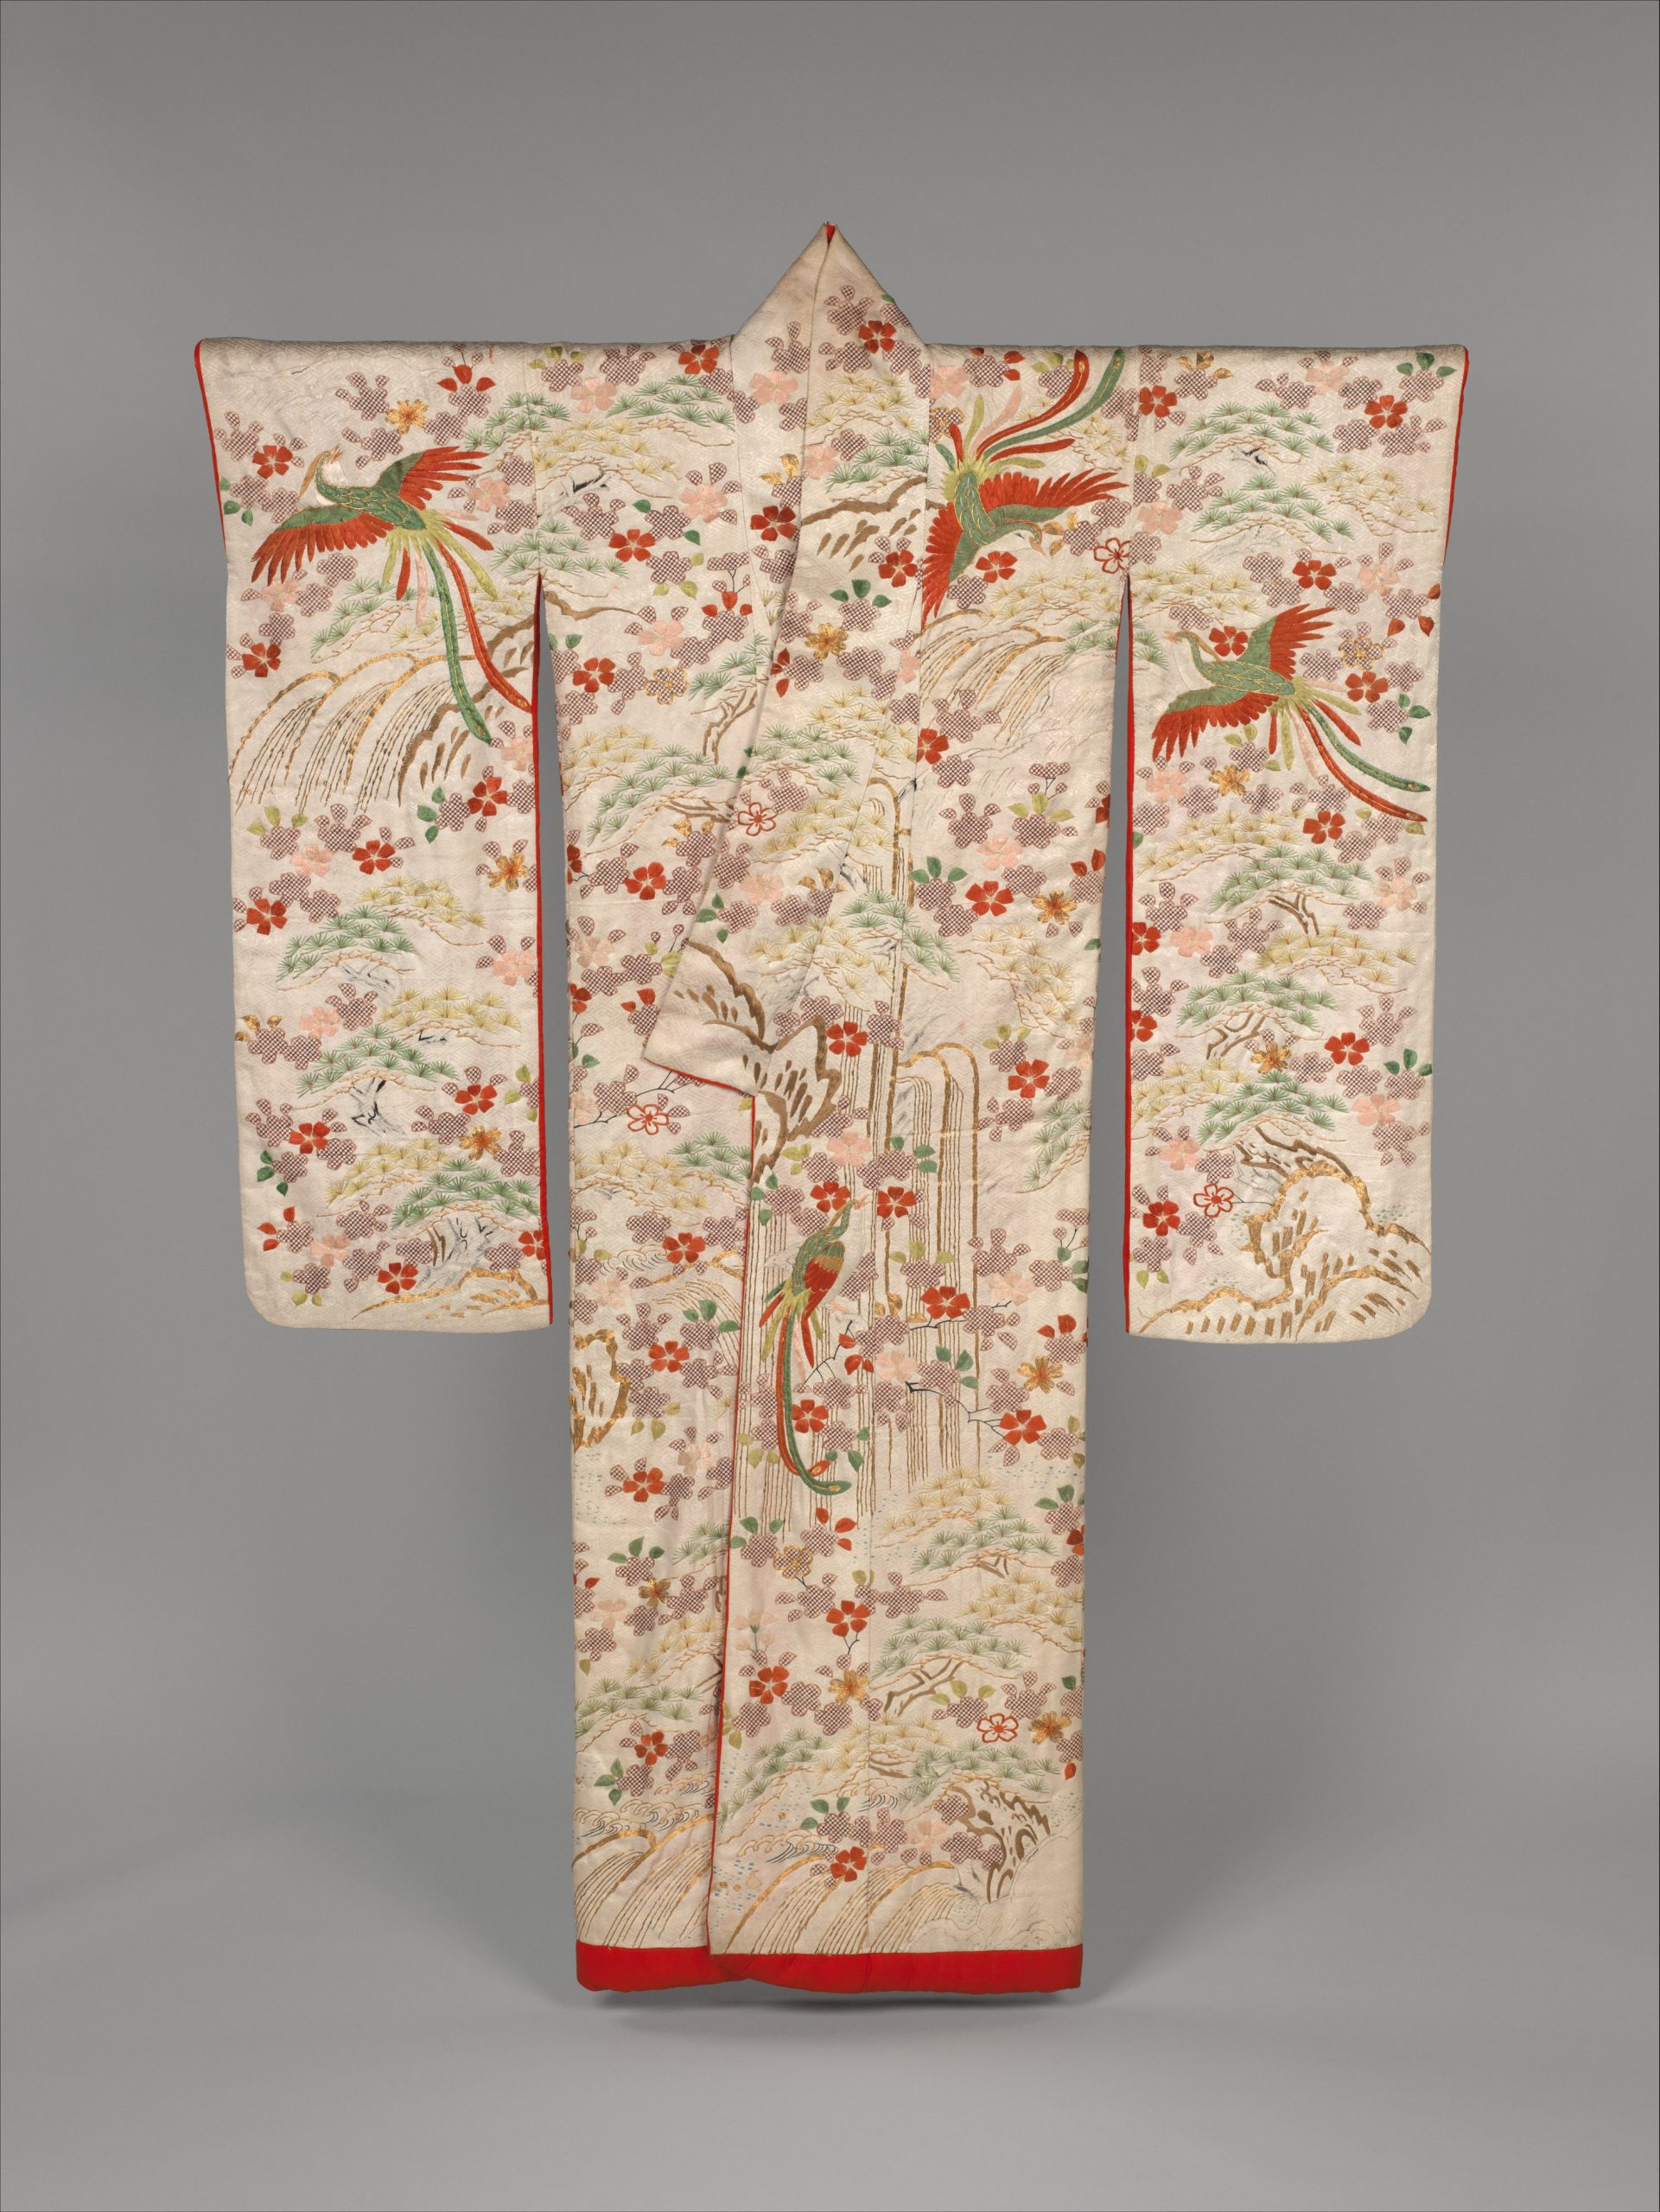 Photograph of a red and cream coloured richly embroidered Kimono displayed on a T-bar hanger